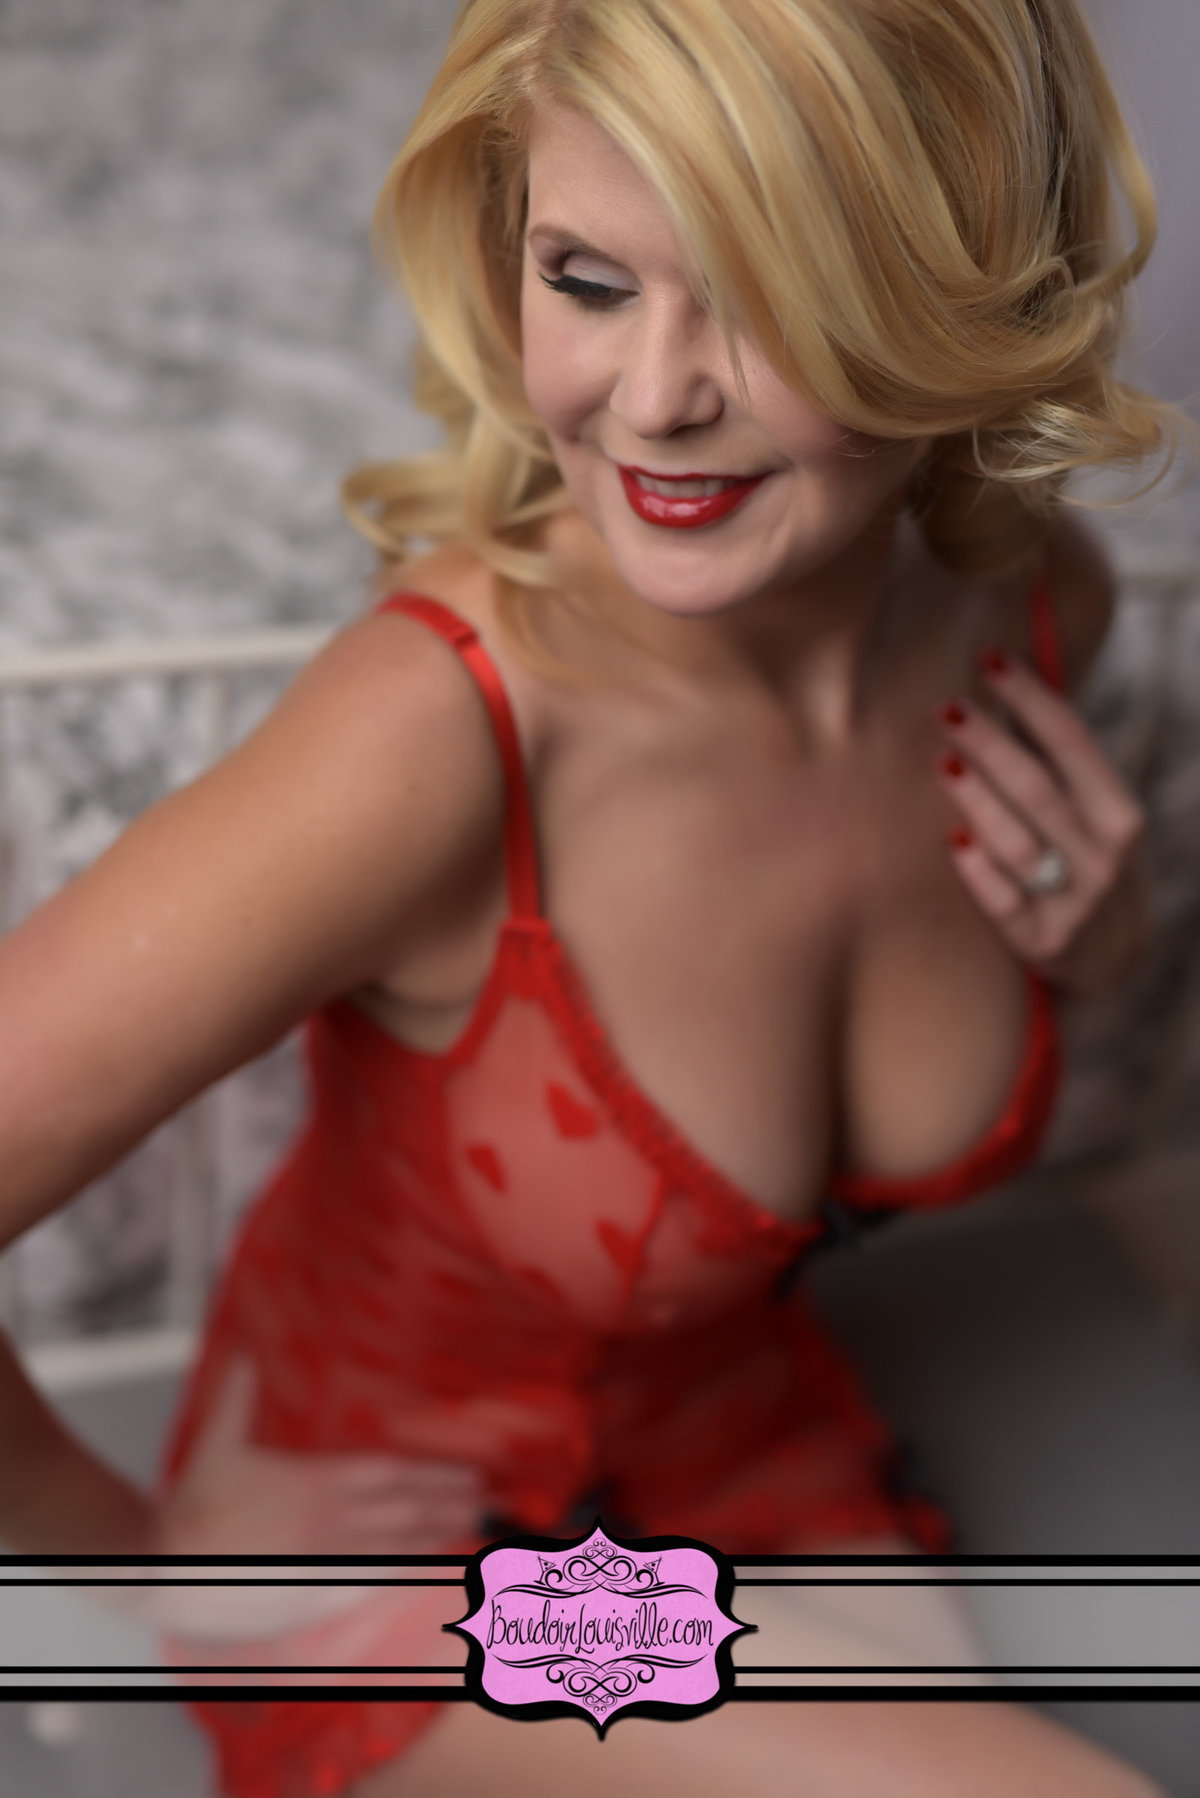 Boudoir Louisville - Boudoir Photography Studio-695